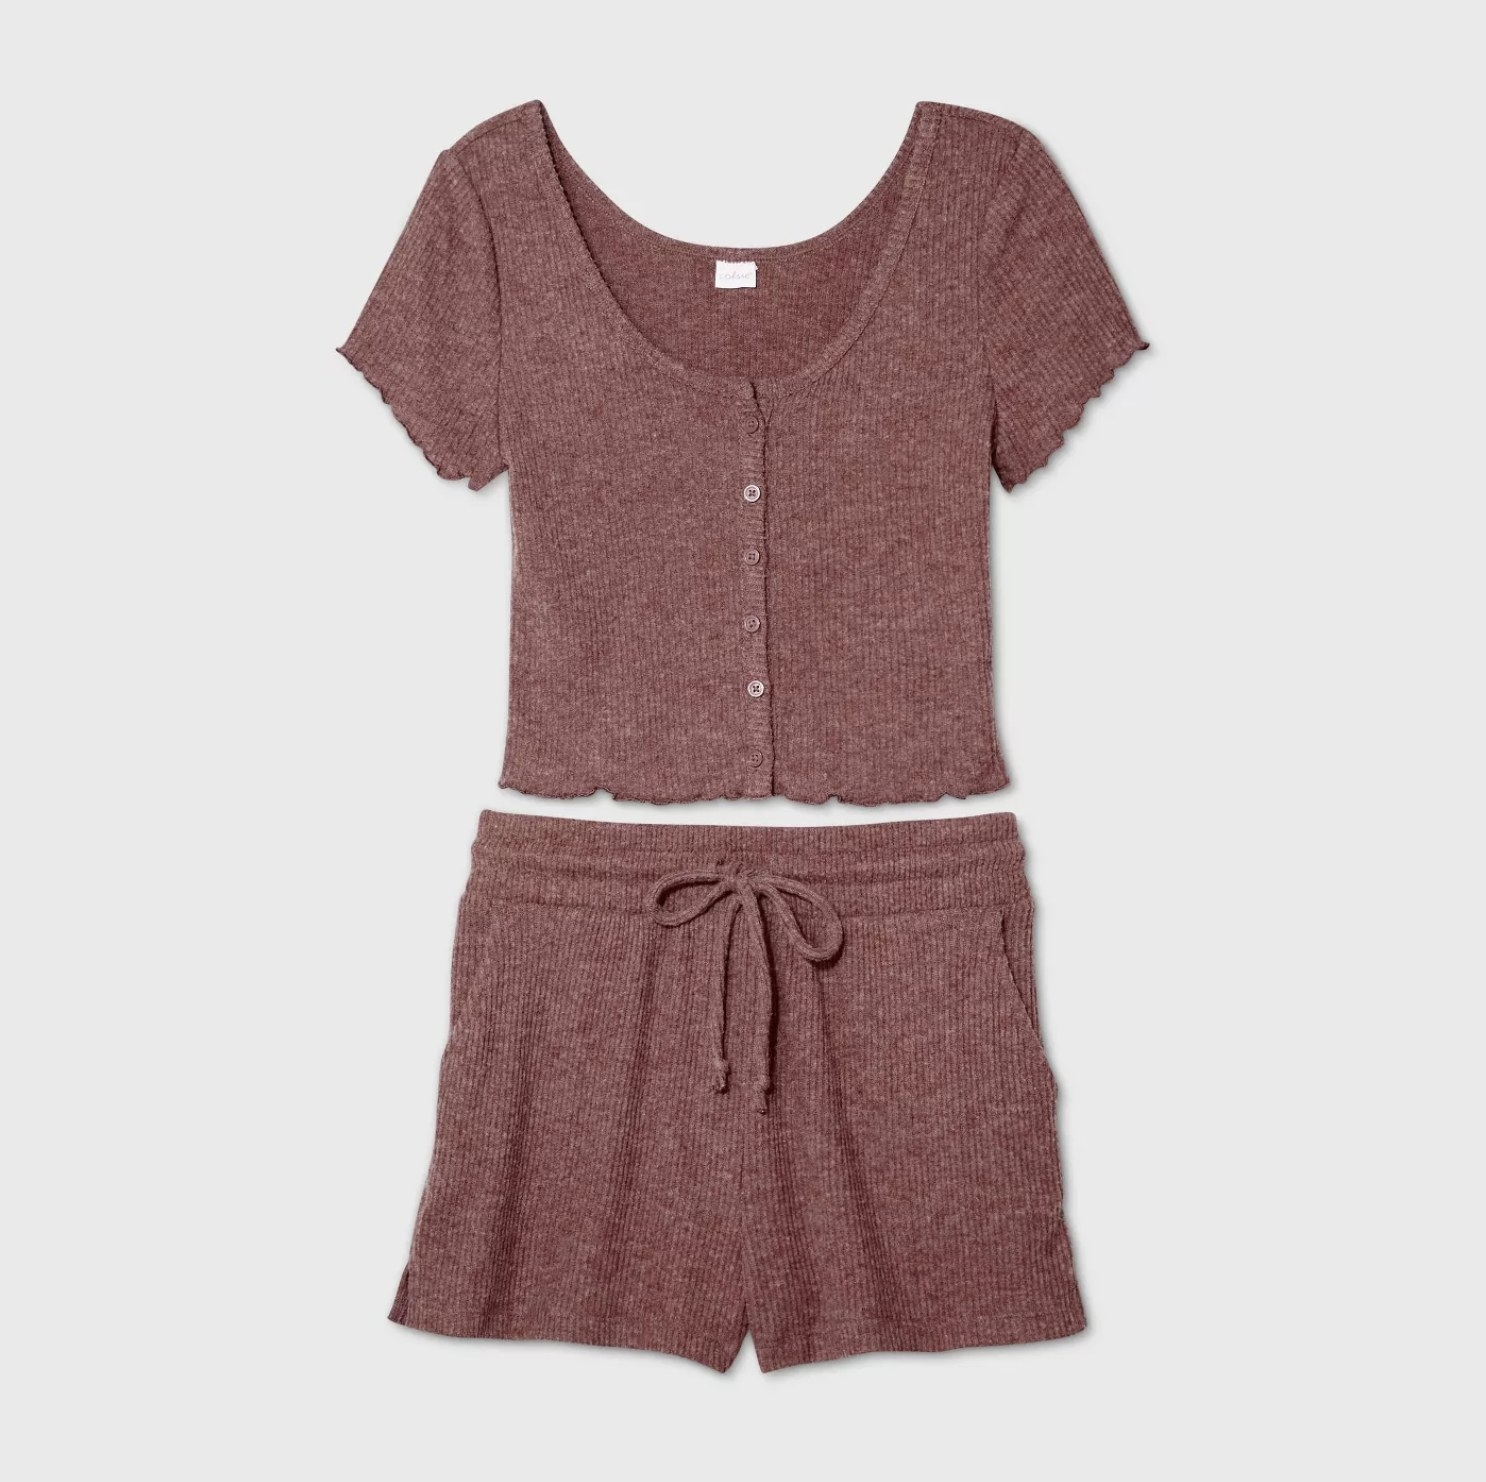 A mauve pajama set consisting of a ribbed short sleeve top with a button-front design and drawstring shorts